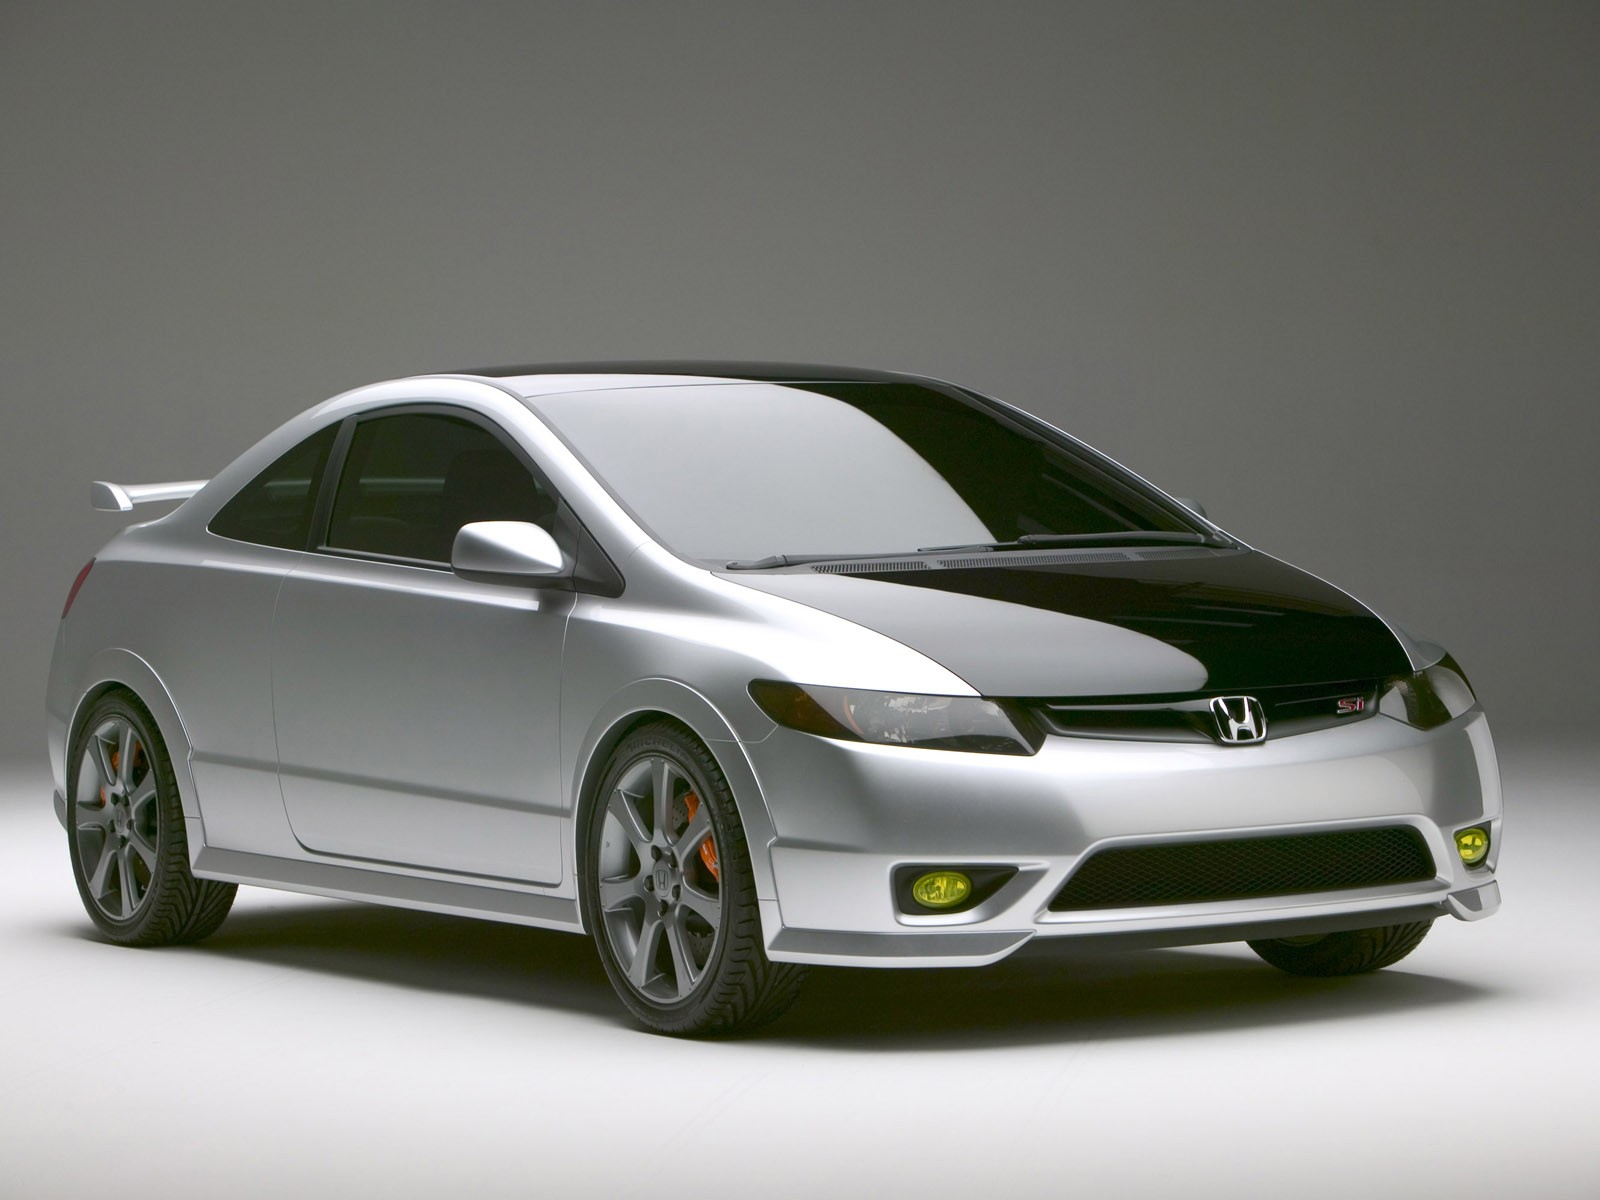 Nice Cars Honda Civic Si Upcoming Model 2011